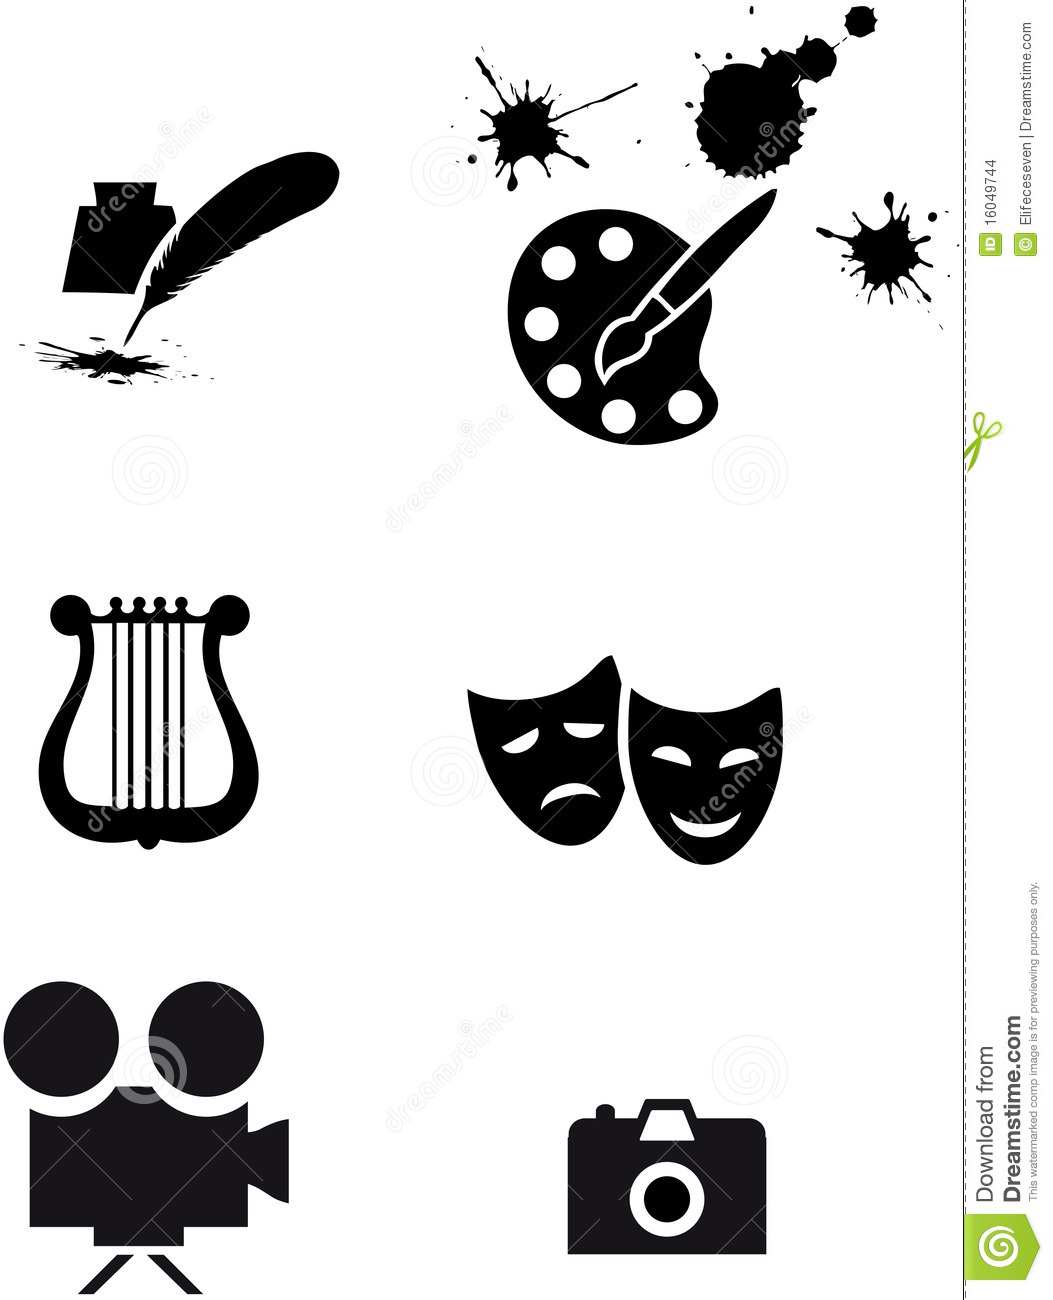 Art Symbols Stock Images - Image: 16049744